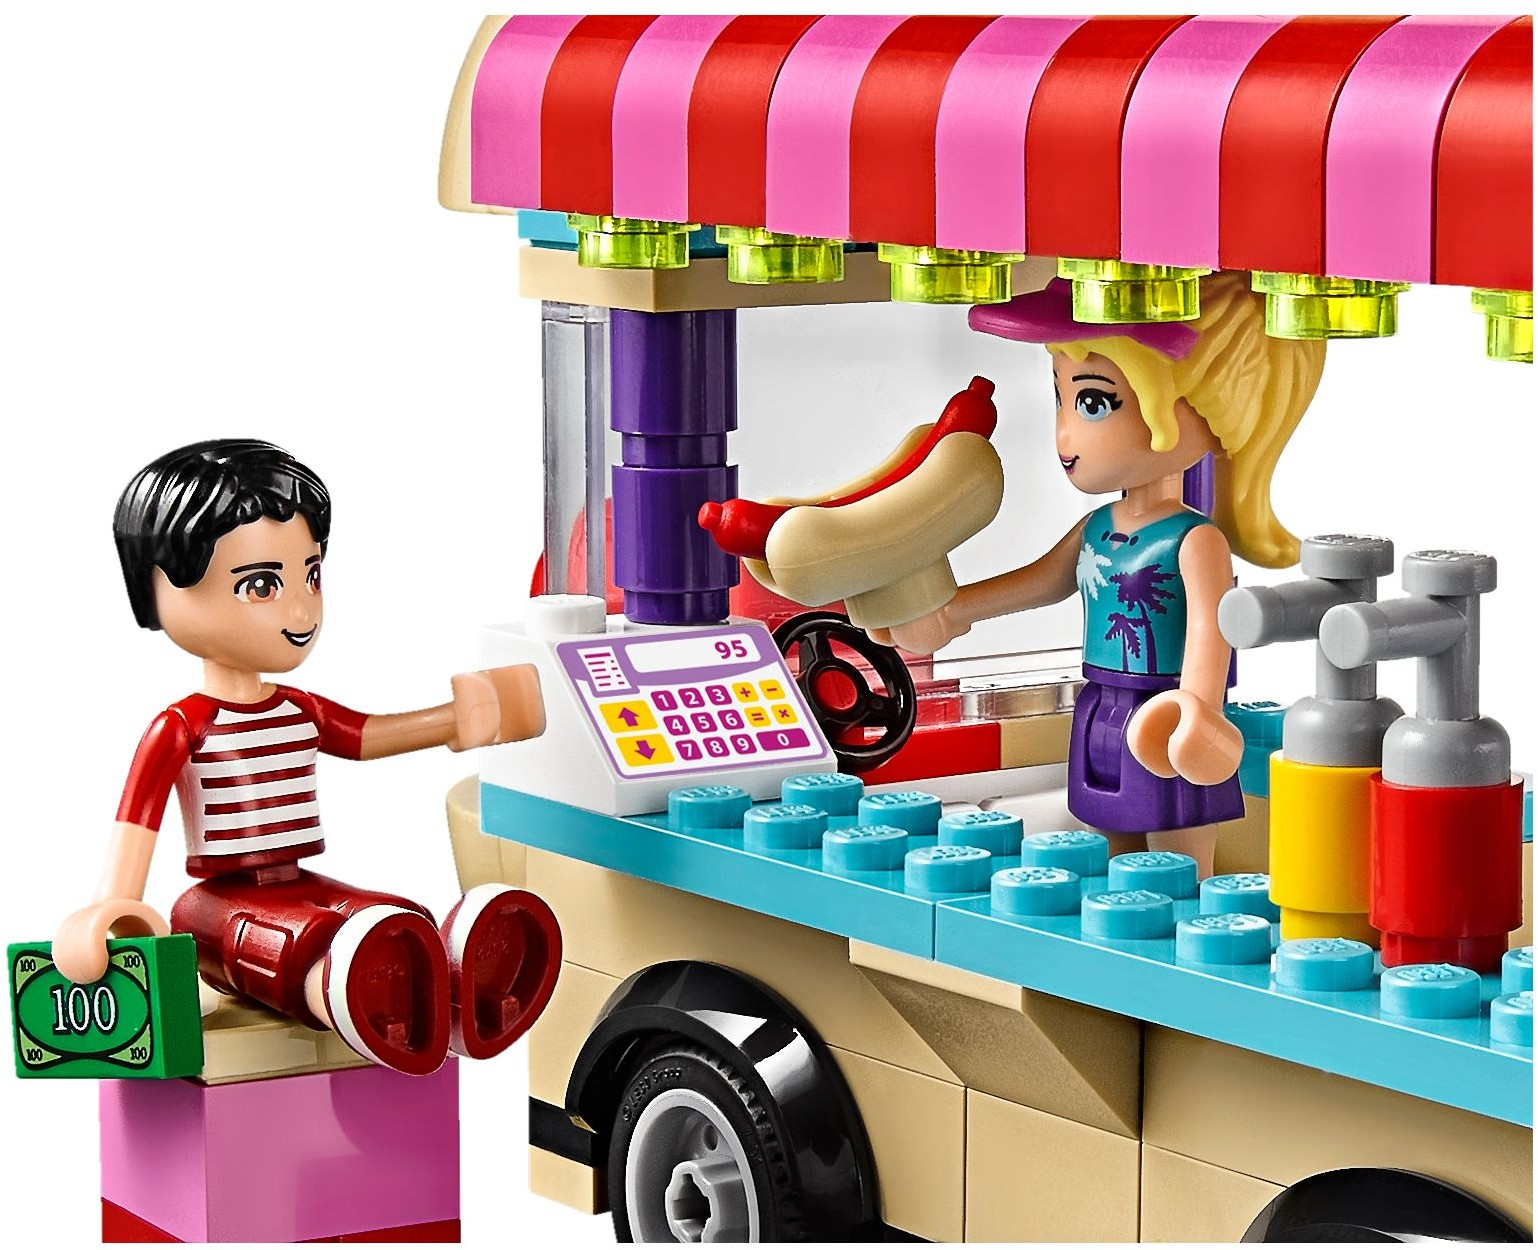 Lego Friends. Парк развлечений: фургон с хот-догами